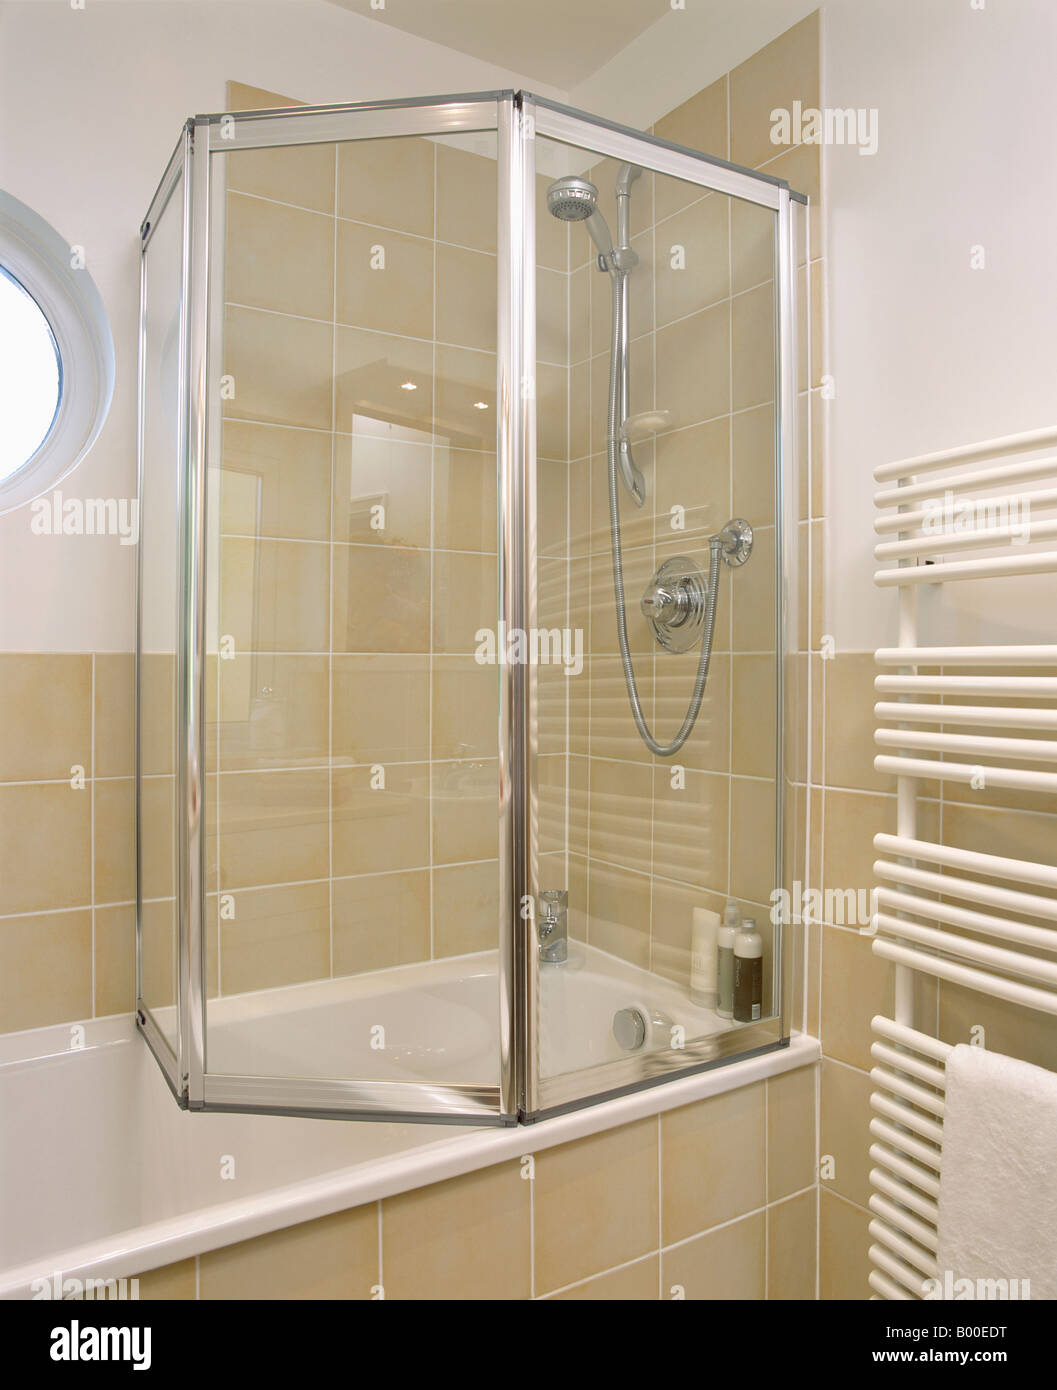 Folding Glass Shower Doors On Bath In Modern Bathroom With Neutral Wall  Tiles Pictures Gallery